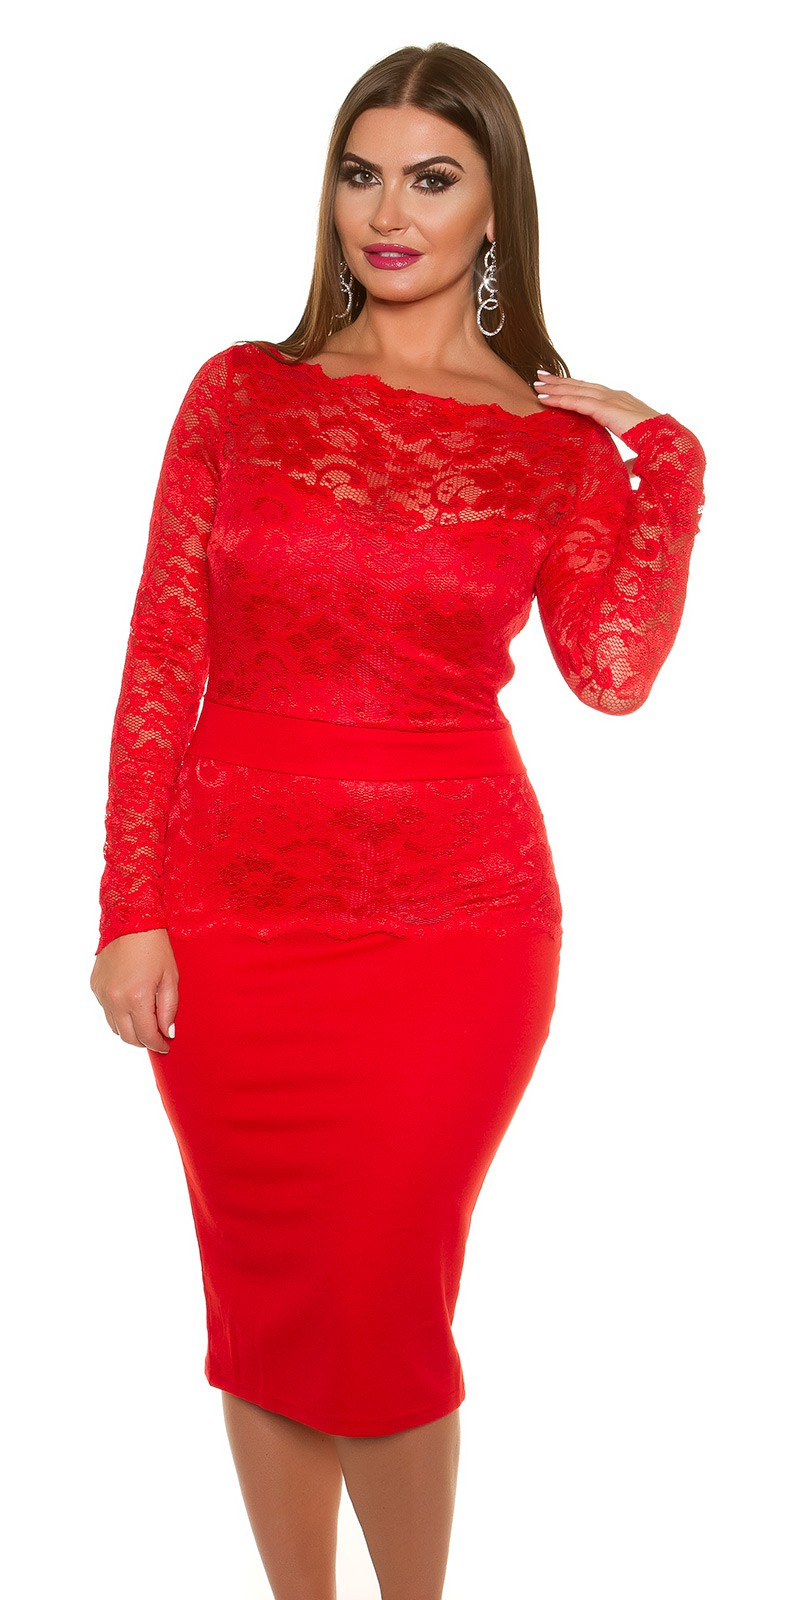 06e20dcbd524 iiGirls Size Sexy KouCla Midi-Dress with lace  Color RED Size 16 0000K18406C ROT 23.  Cervene saty pre moletky